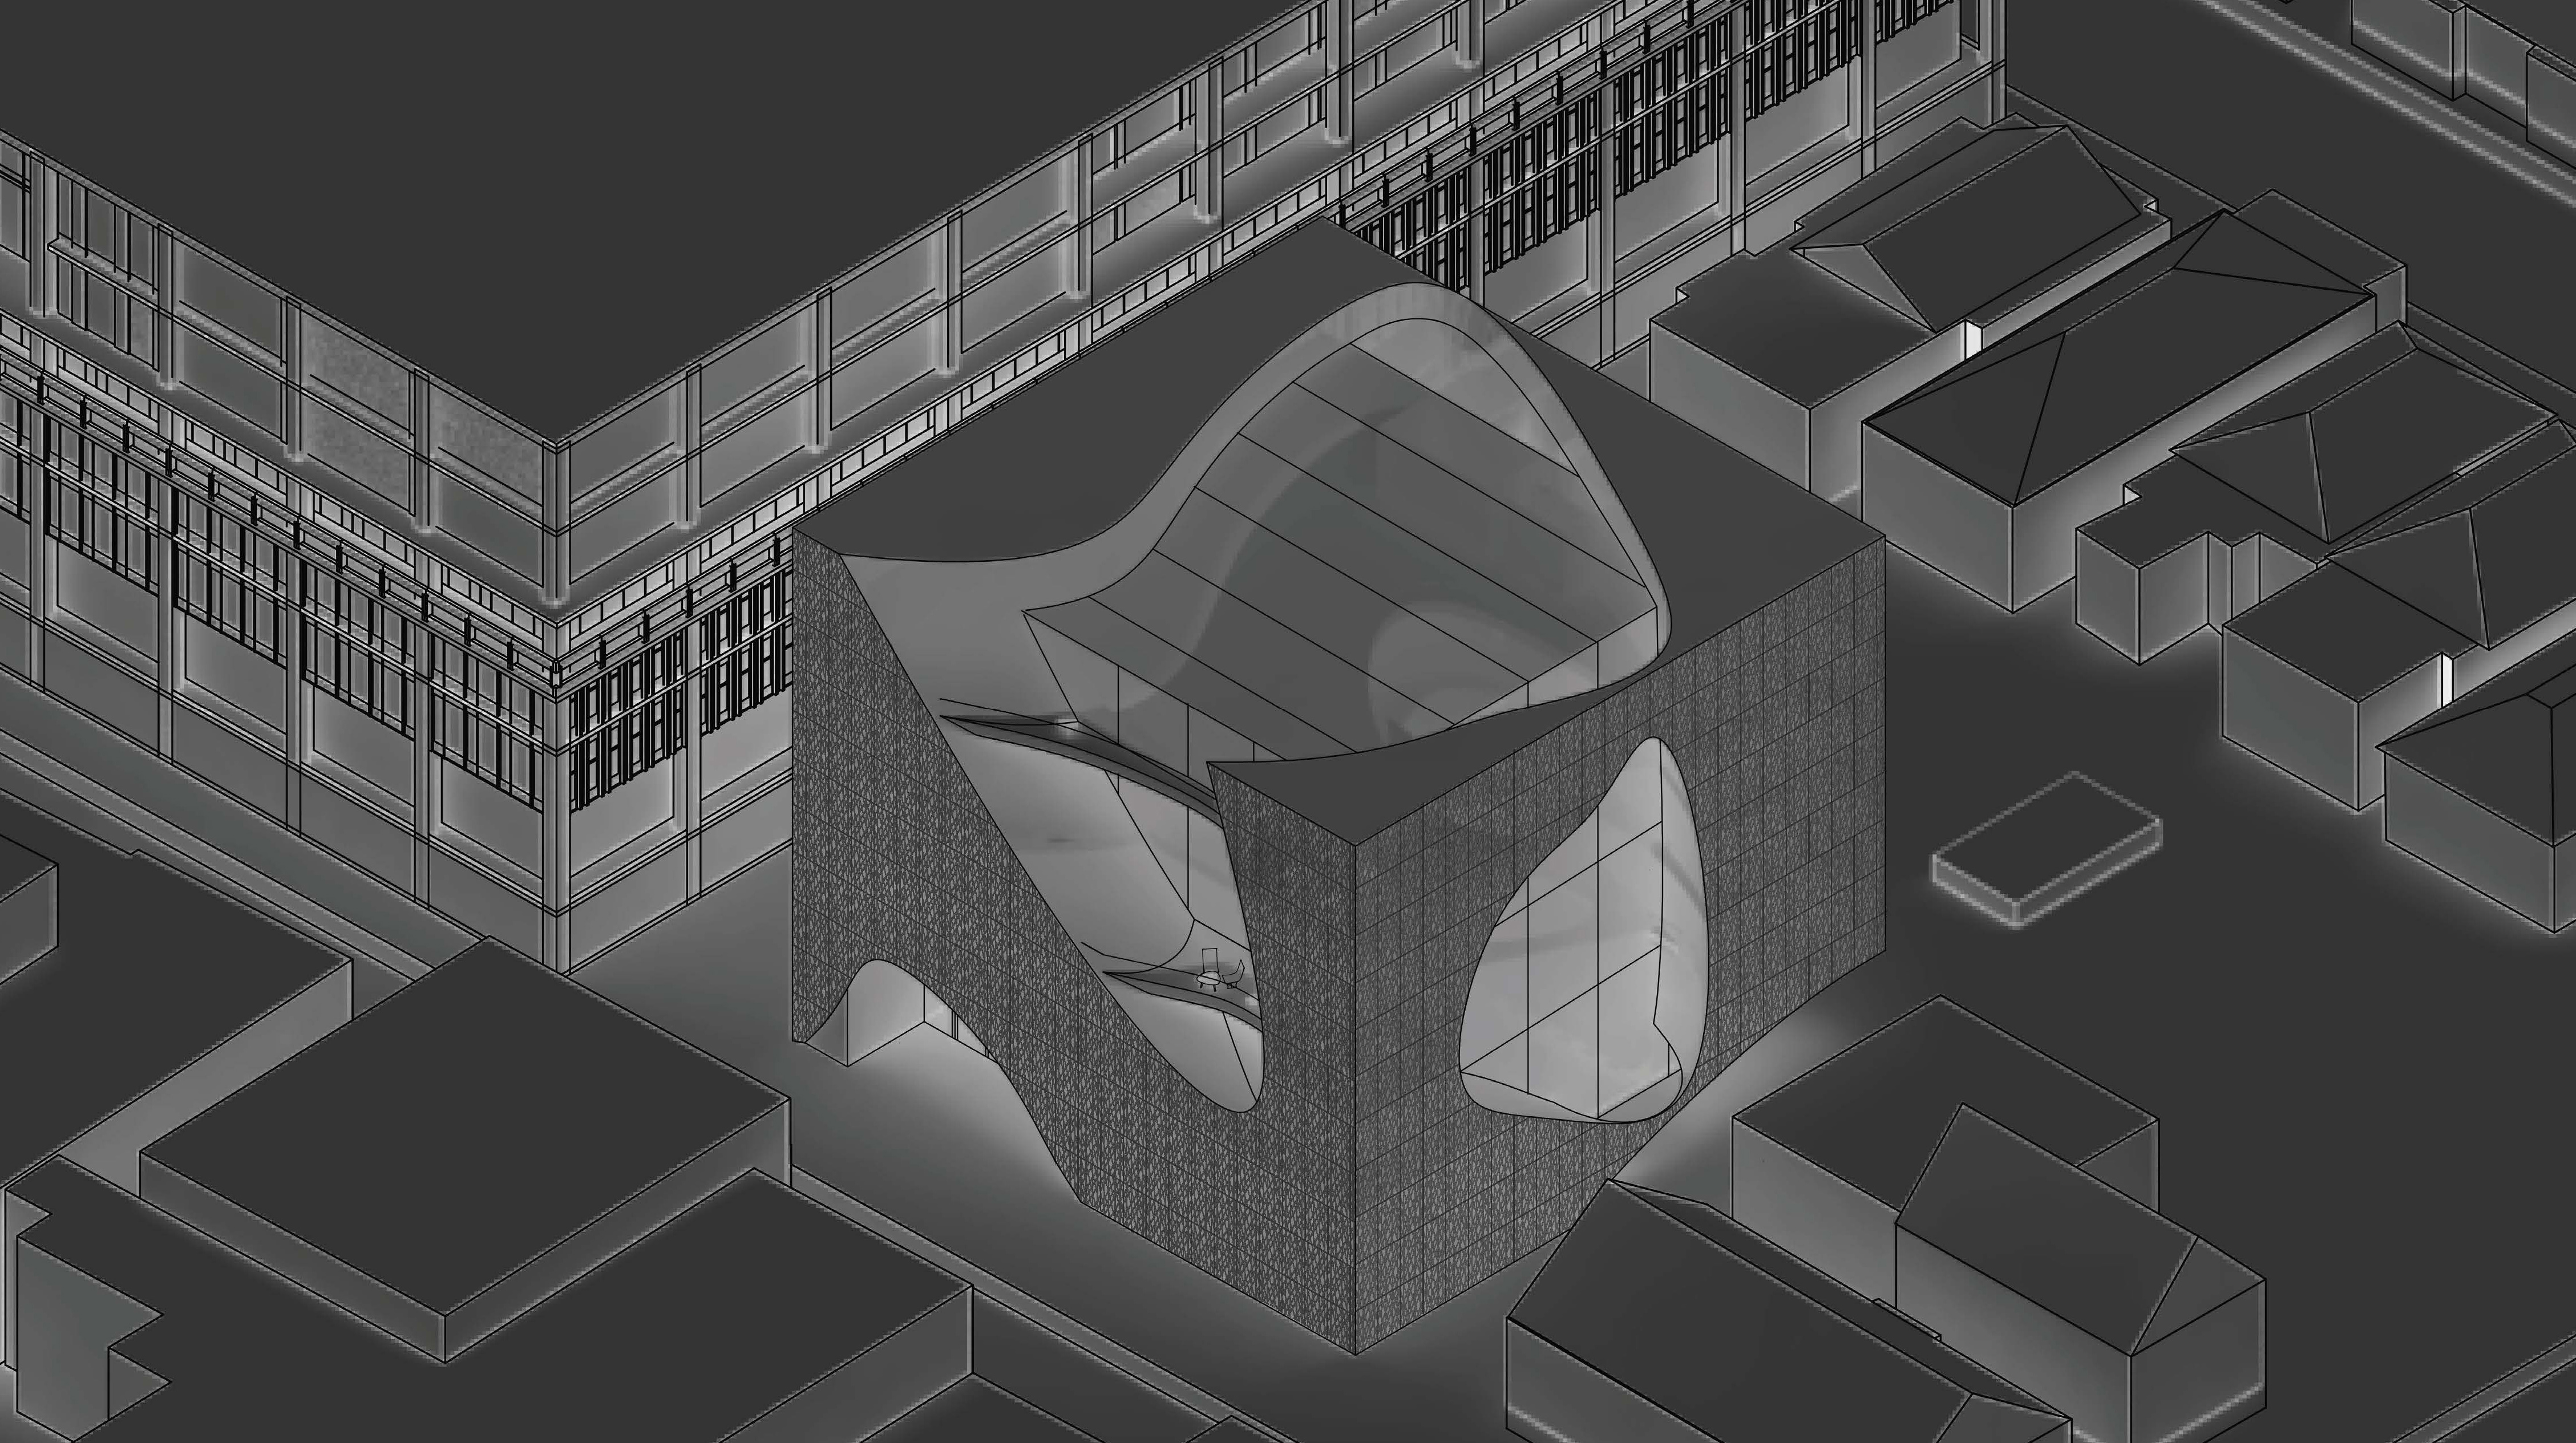 architectural rendering of square building with round cutouts